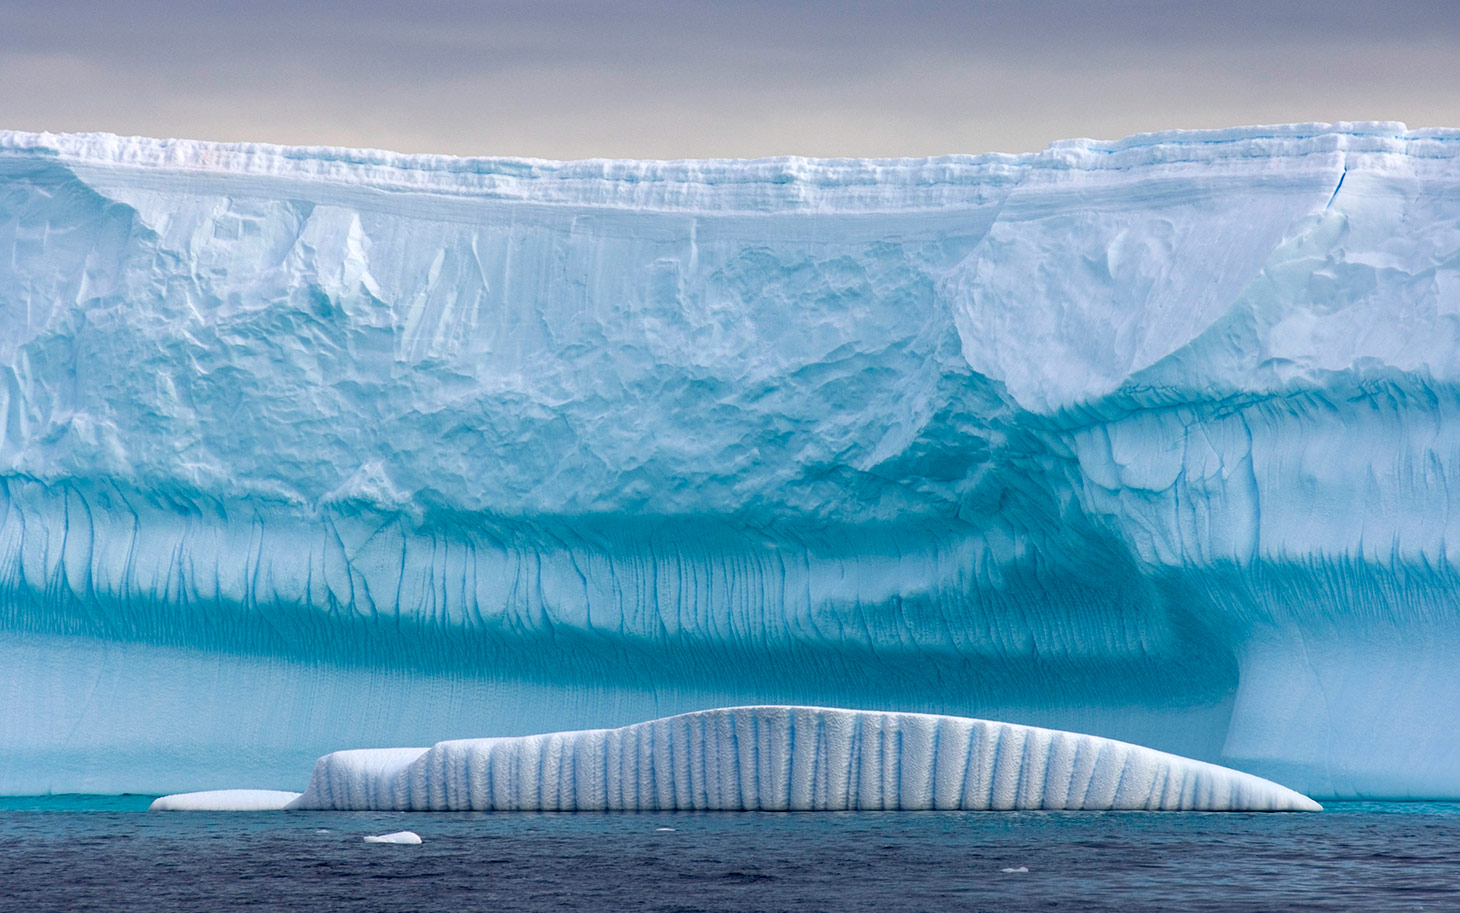 Caption:ANTARCTICA - UNDATED:***EXCLUSIVE*** An iceberg in front of a glacier, on the Western Antarctic peninsula, Antarctica, Southern Ocean. Humans may have spent thousands of year perfecting art and architecture but these incredible photographs of spectacular icebergs show they are no match for nature's grand designs. Captured off the Western Antarctic peninsula the colossal ice carvings have been whittled away by biting polar winds, water, and chilling sub-zero temperatures to form incredible mega structures that take the breath away. In the vast array of jaw-dropping shapes some icebergs feature towering pillars of ice while others appear to have had bridges and tunnels masterfully bored into their huge floating masses. Some even take on the form of gigantic frosty bridges of ice and snow with intricate 'arches' carved out by the harsh Antarctic conditions. Photogrpaher Steven Kazlowski, 40, witnessed the amazing sights as he toured the world's most southerly continent on a 62-foot engined sailing boat. Against the jaw-dropping Antarctic background each paints a magnificent picture - and even caught the eyes of passing Gentoo penguins and humpback whales. (Photo by Steven Kazlowski / Barcroft Media / Getty Images)